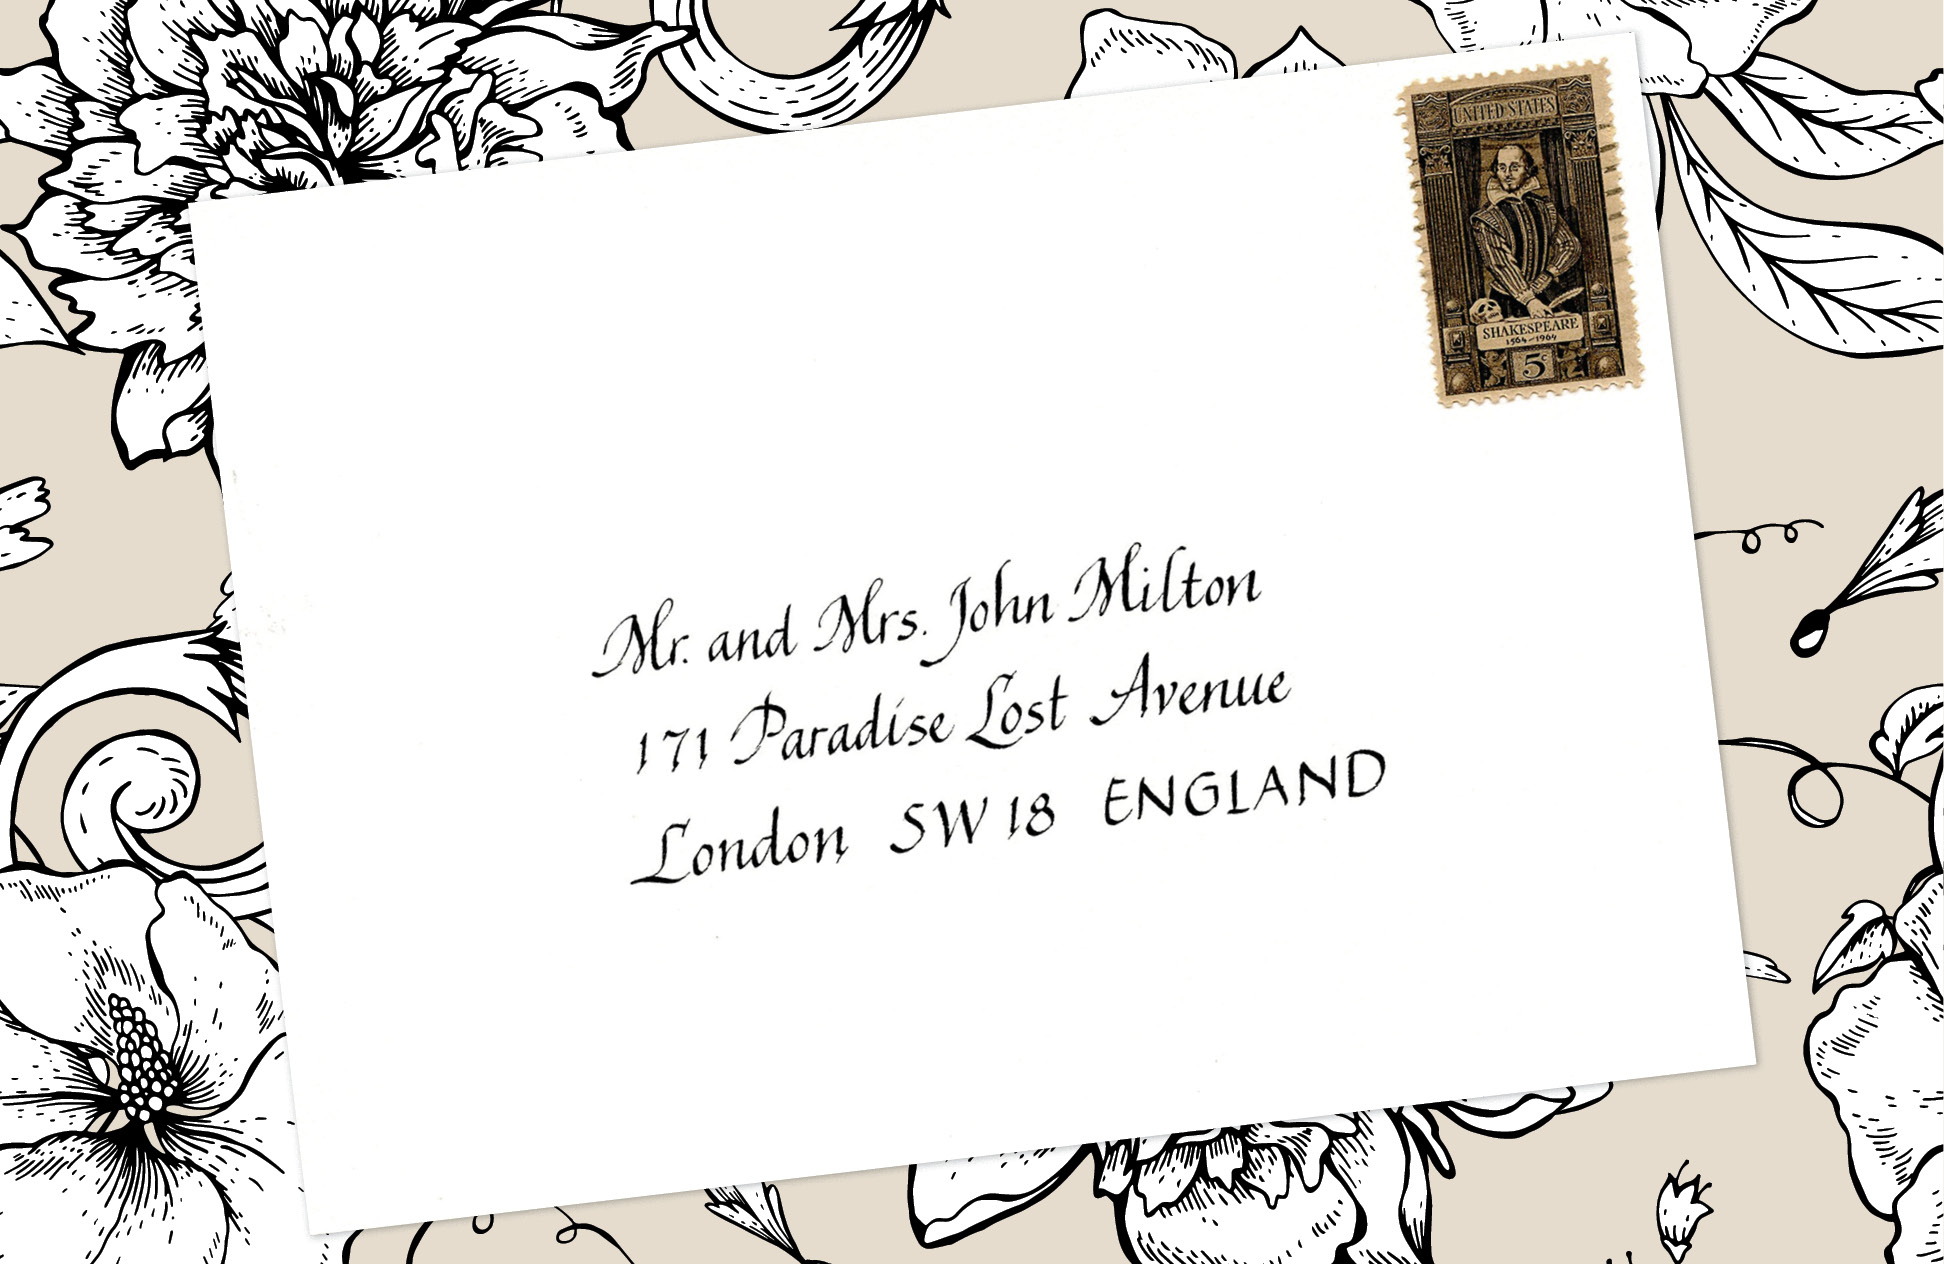 18. Style: Mr. and Mrs. John Milton (Chantal)